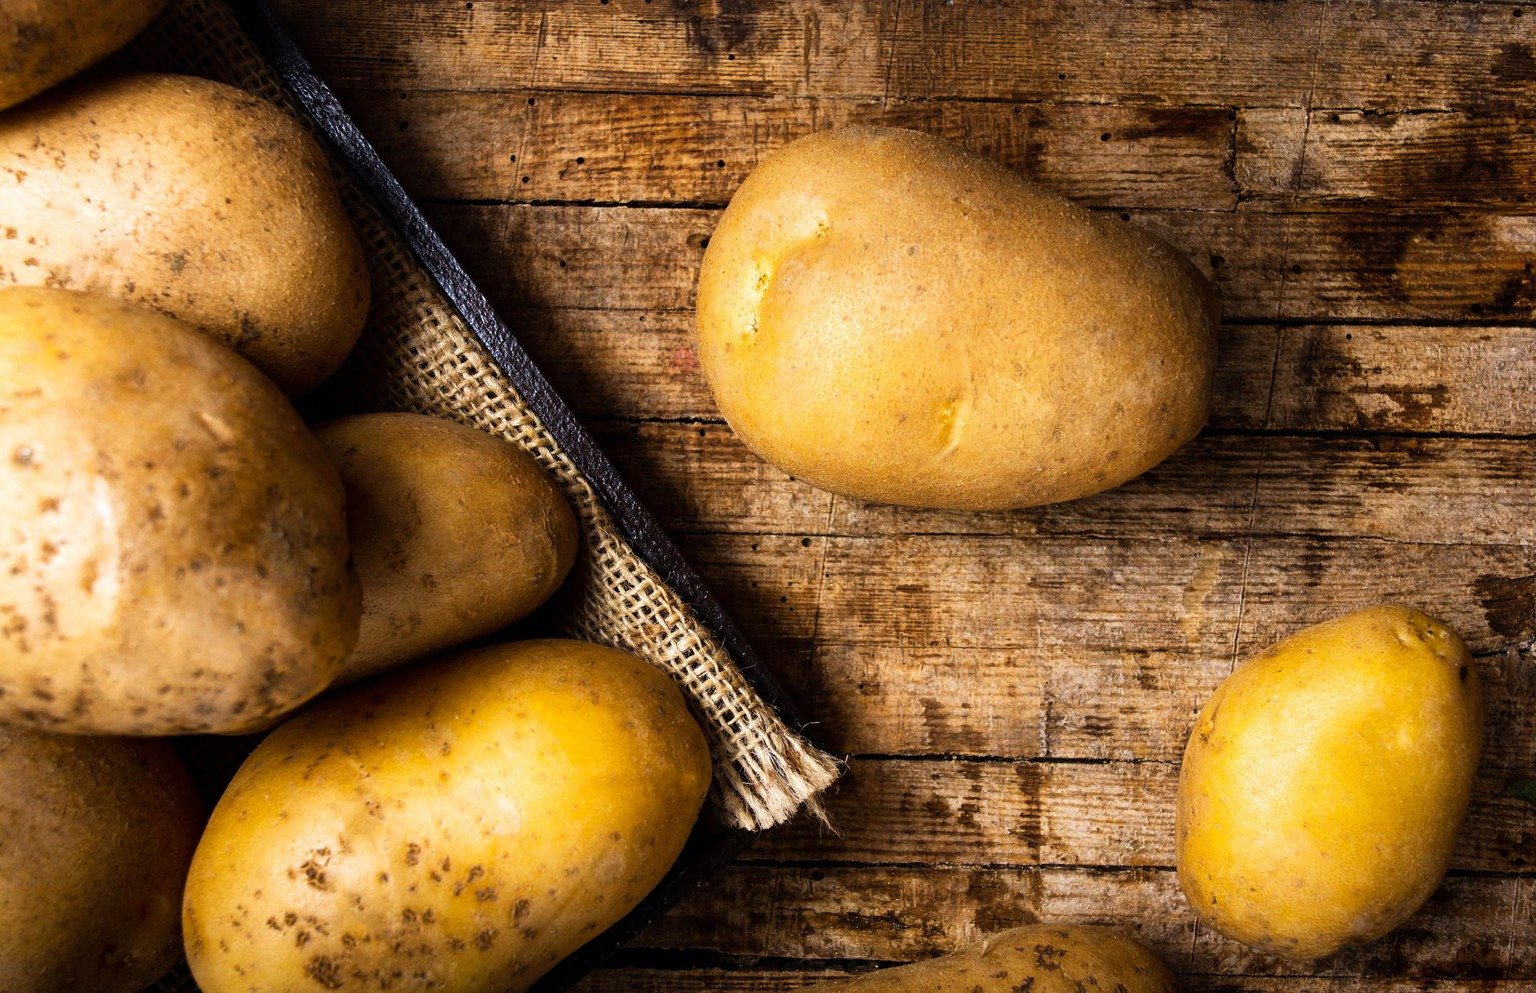 Potatoes on a rustic wooden background closeup